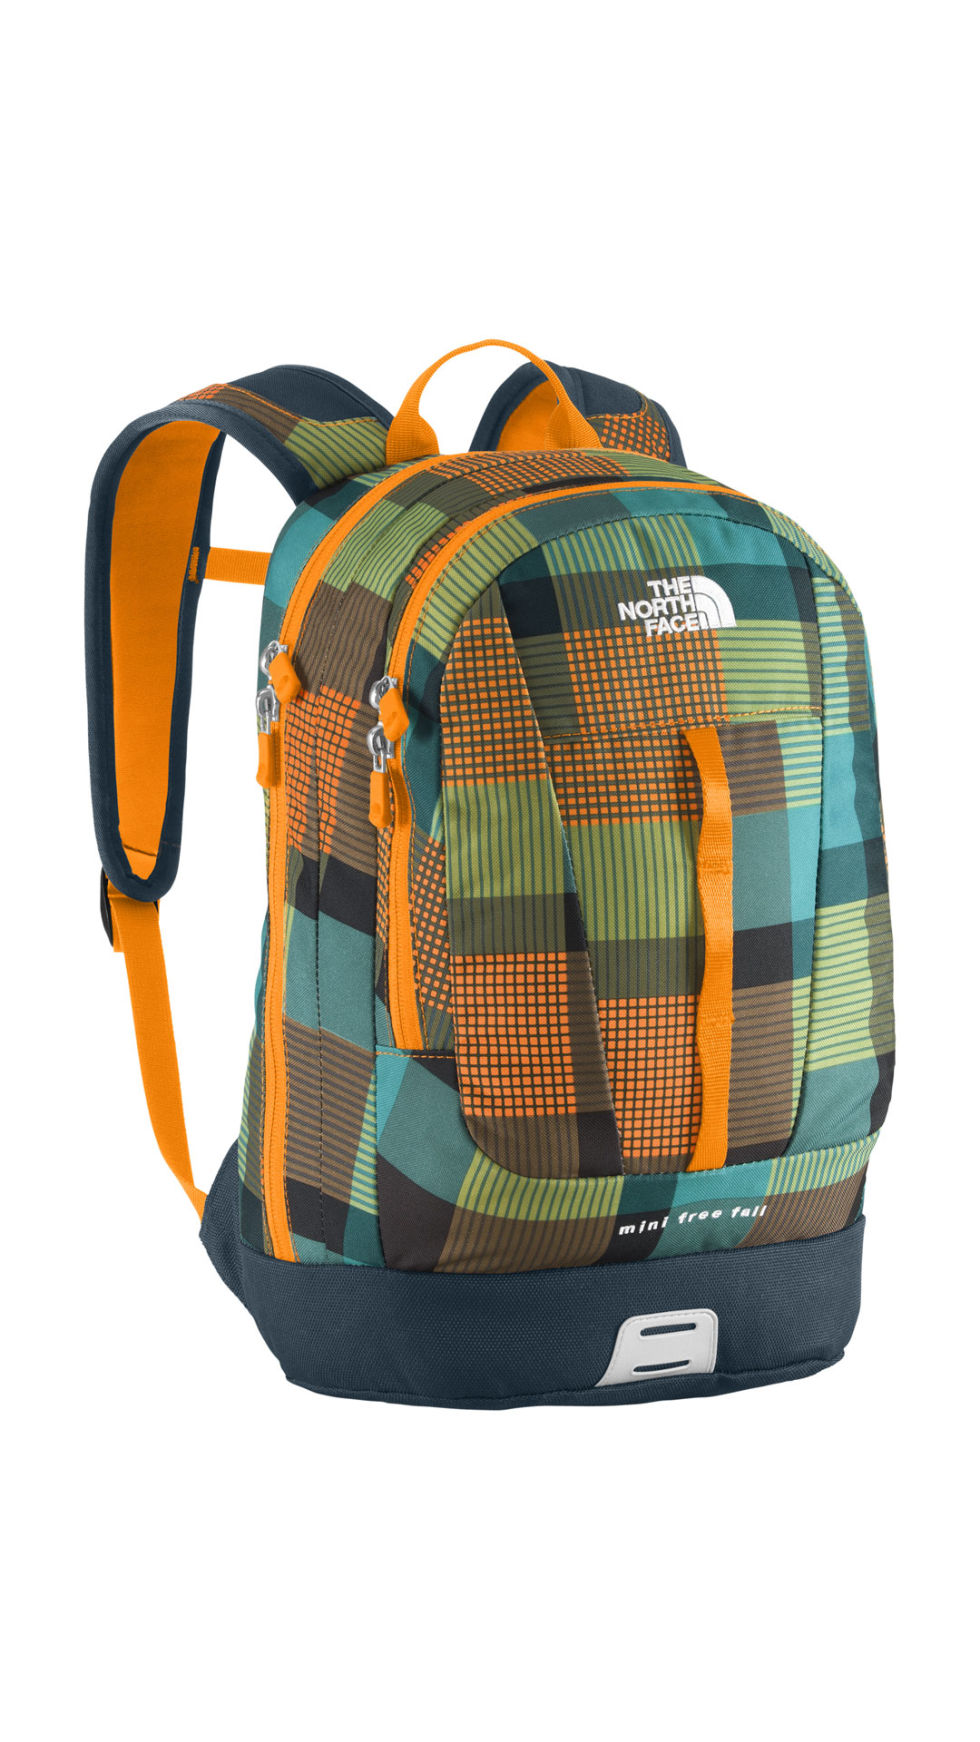 Boys Backpacks For School U2zil983